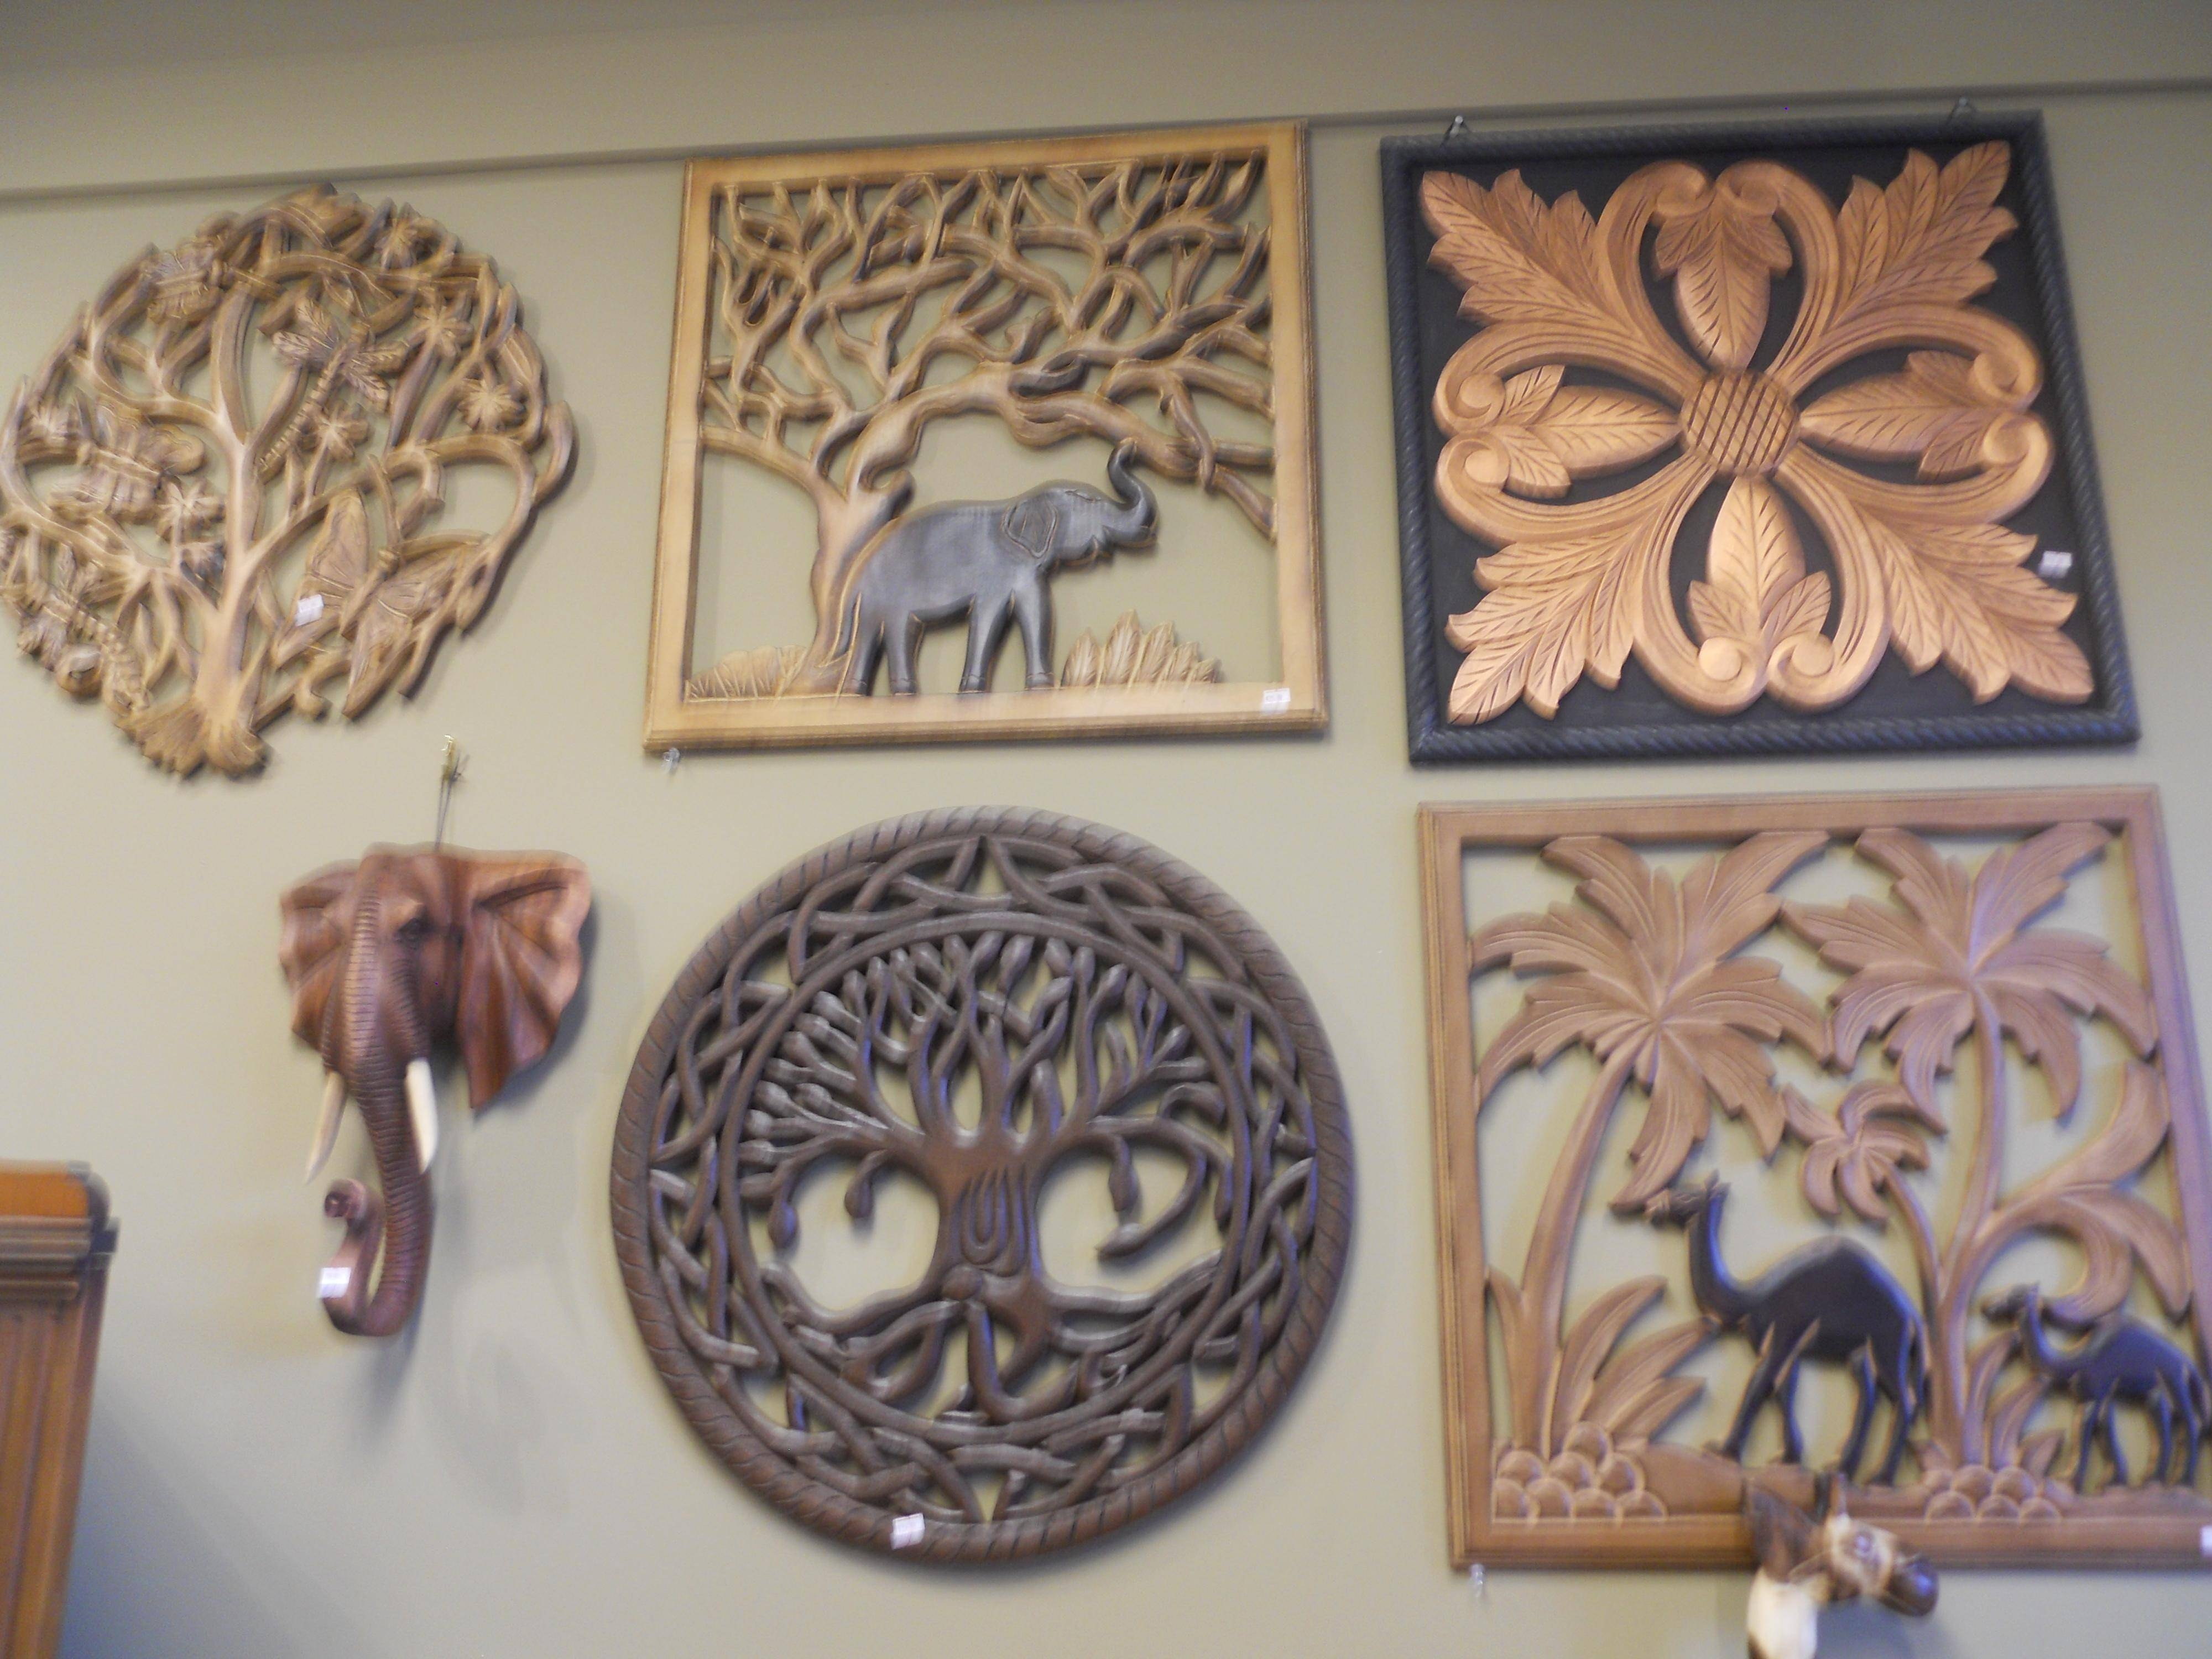 Wood Carved Wall Art | Himalayantrexplorers With Most Recent White Wooden Wall Art (View 11 of 20)